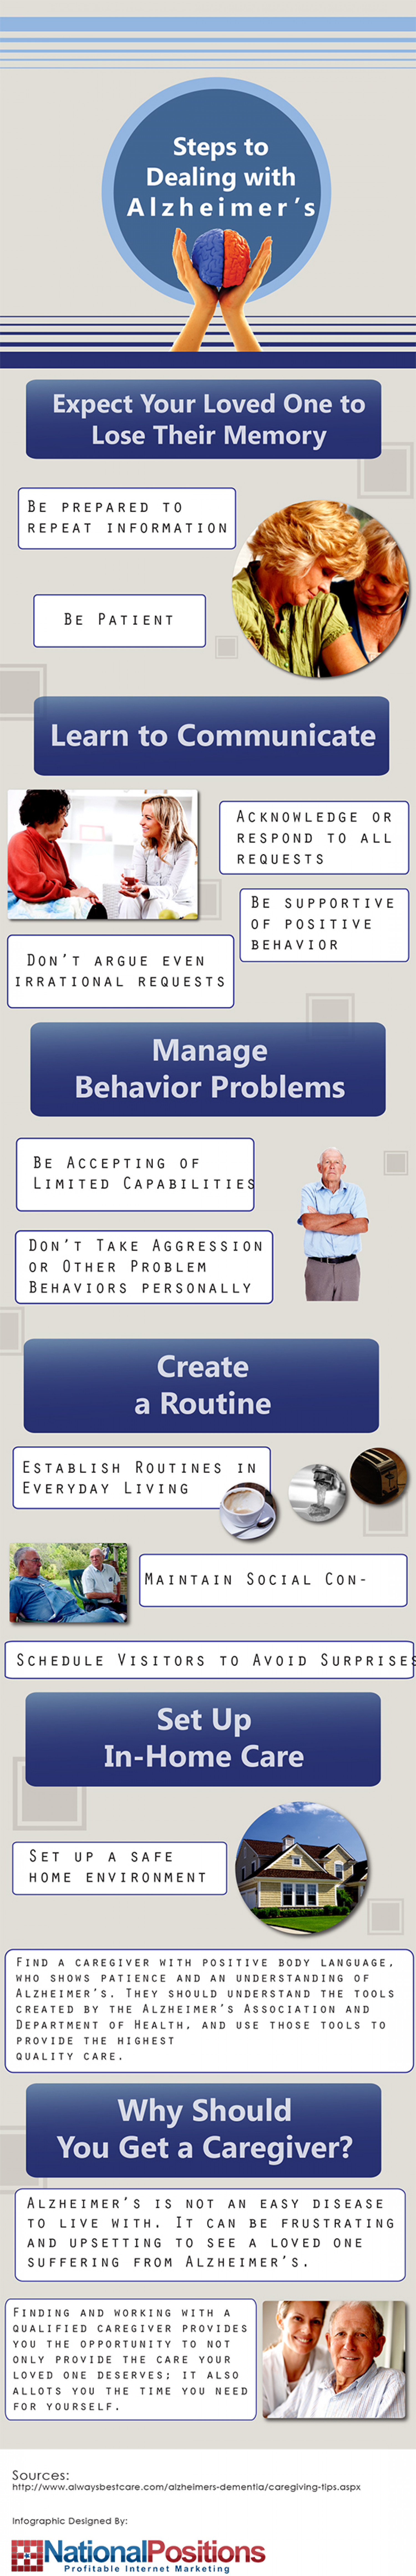 Steps to Dealing With Alzheimer's Infographic